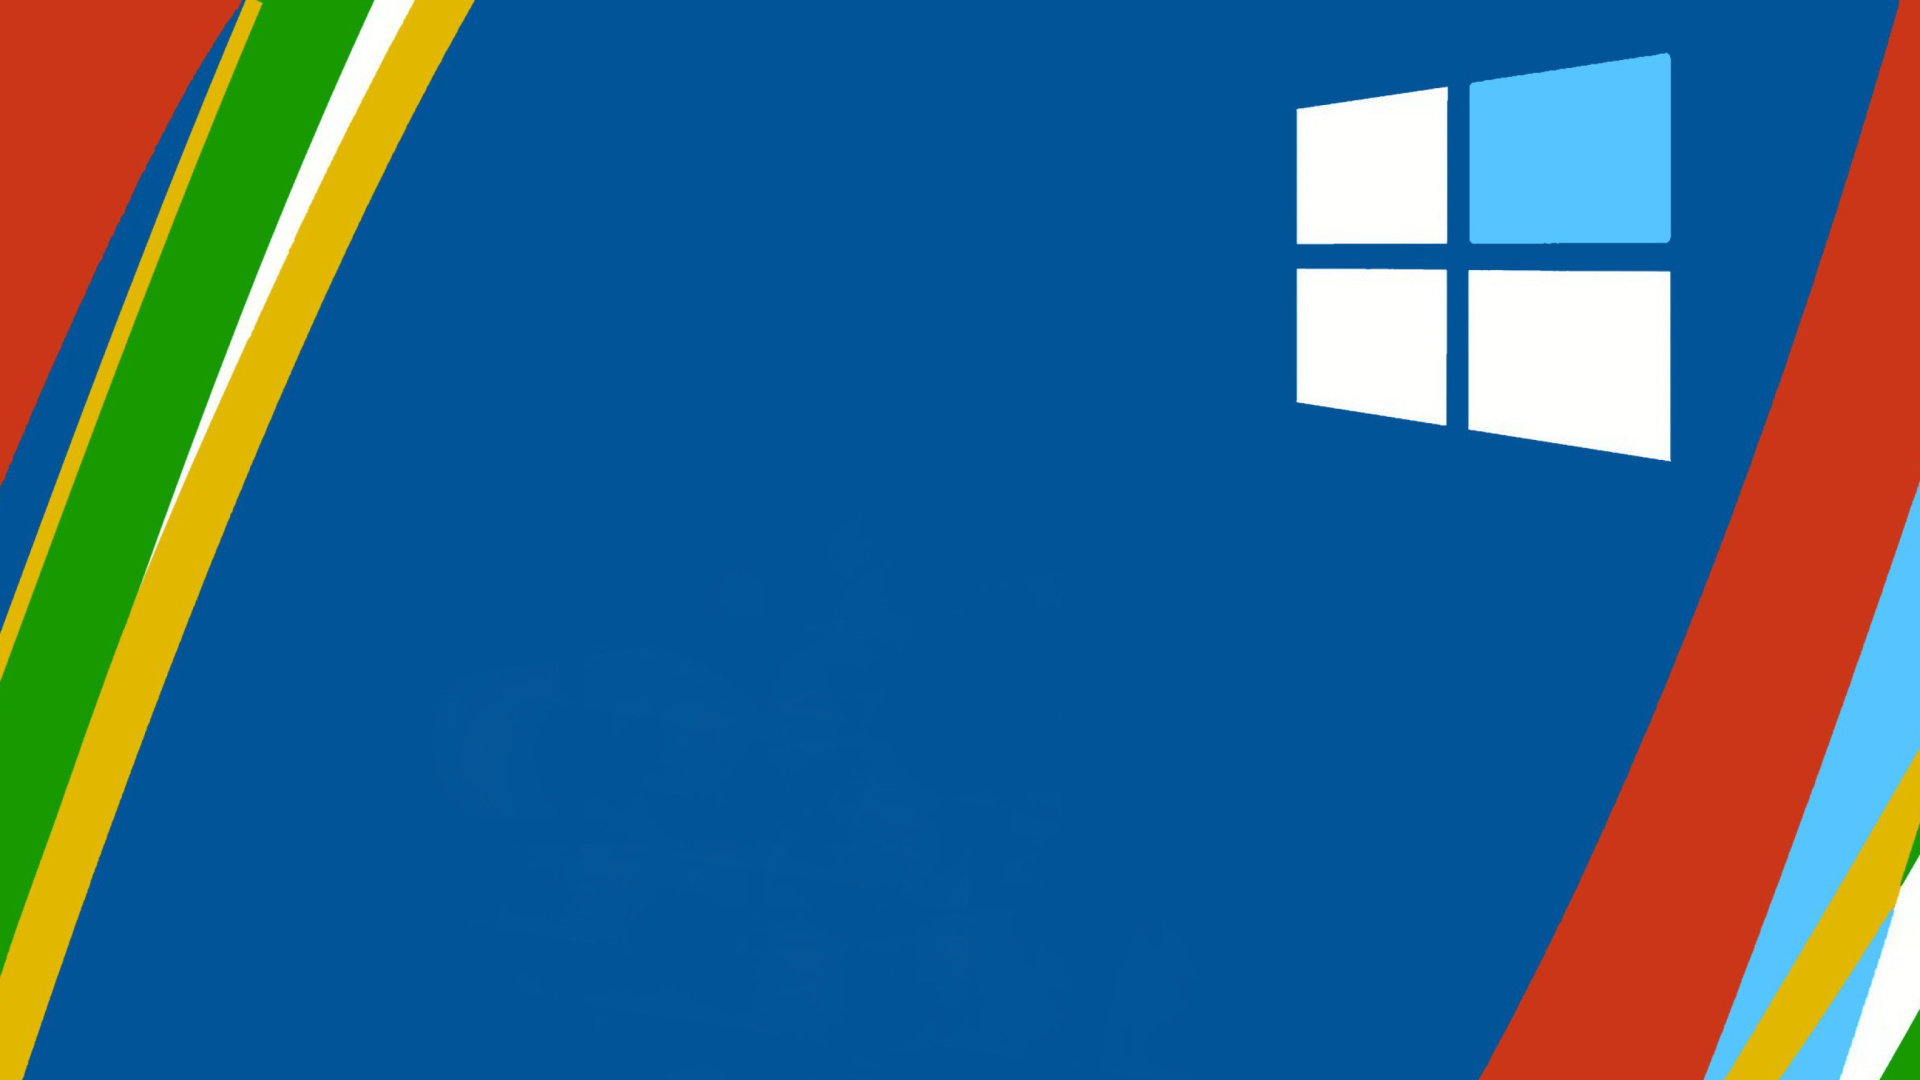 Windows 10 Hd Personalization Sfondi Gratuiti Per Desktop